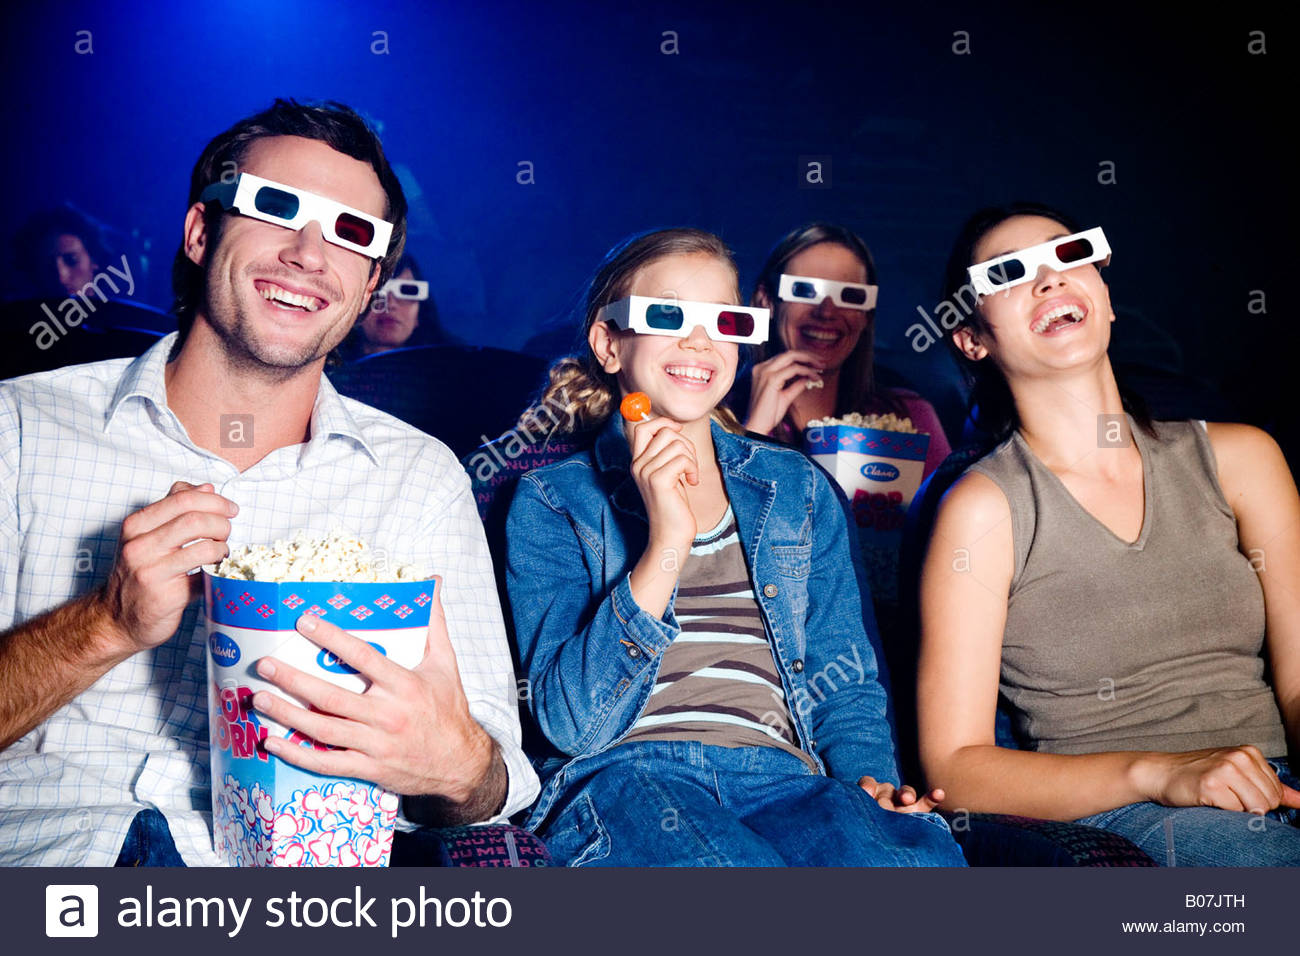 Family at the cinema watching a film through 3-D glasses - Stock Image